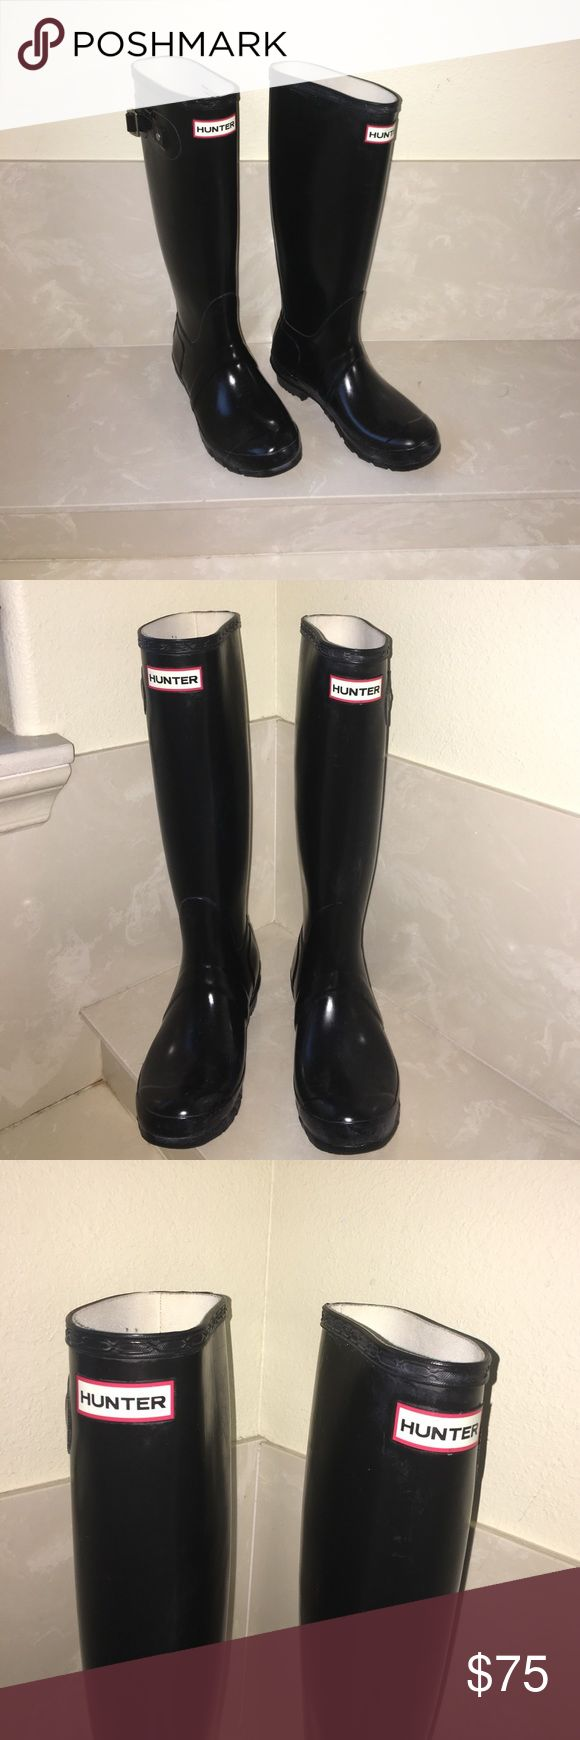 Auth Hunter Tall Wellington black rain boots sz 6 Authentic Hunter Tall Wellington black rain boots sz 6 good condition light scuffs and has some white Markings throughout including on bottom soles. SOLD AS IS FINAL SALE PRICE PLEASE NO OFFERS Hunter Boots Shoes Winter & Rain Boots